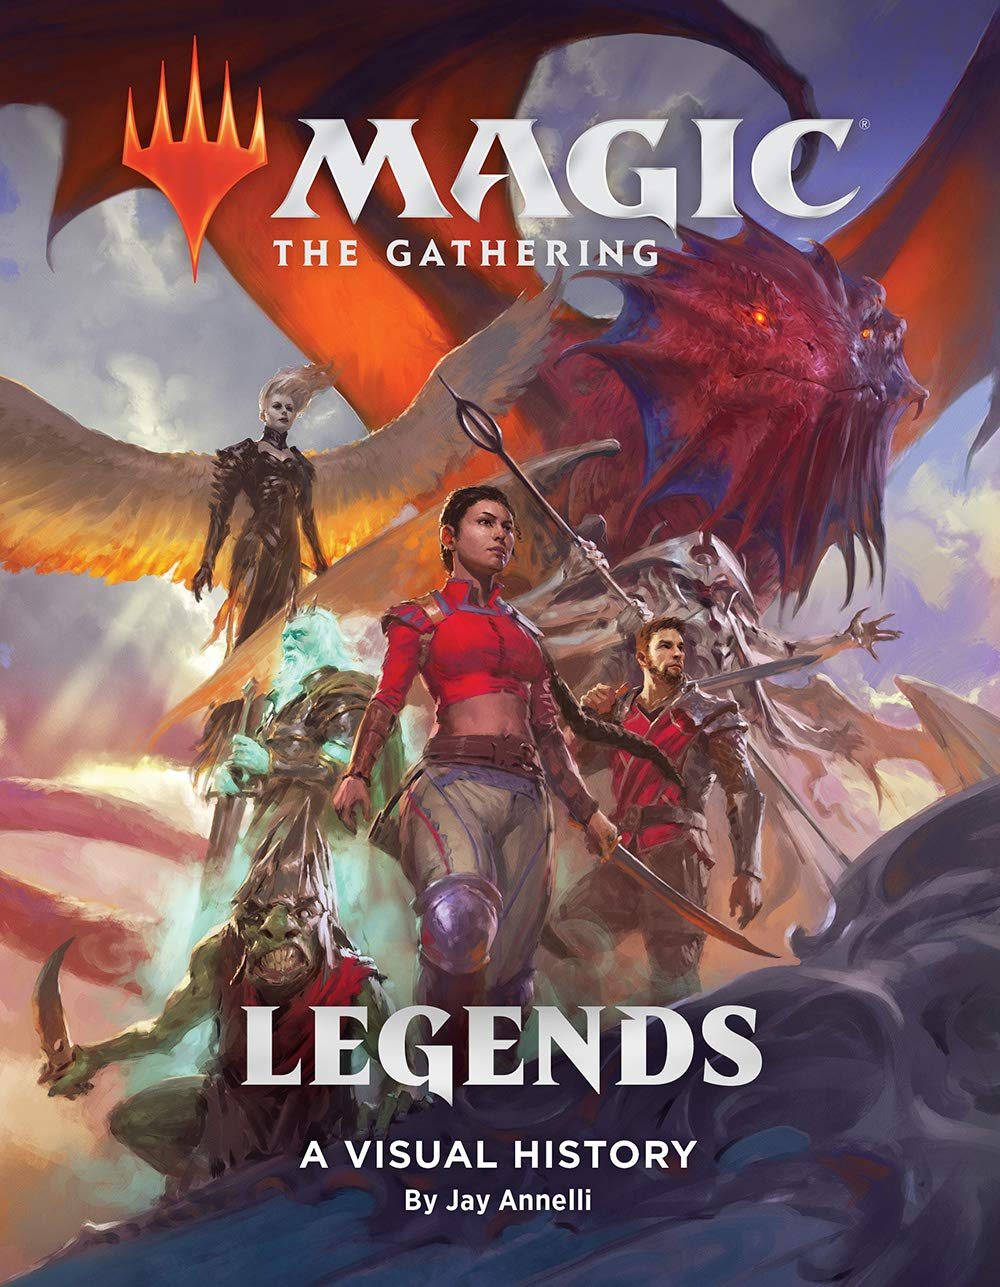 New Magic: The Gathering Art Book is Coming This Year